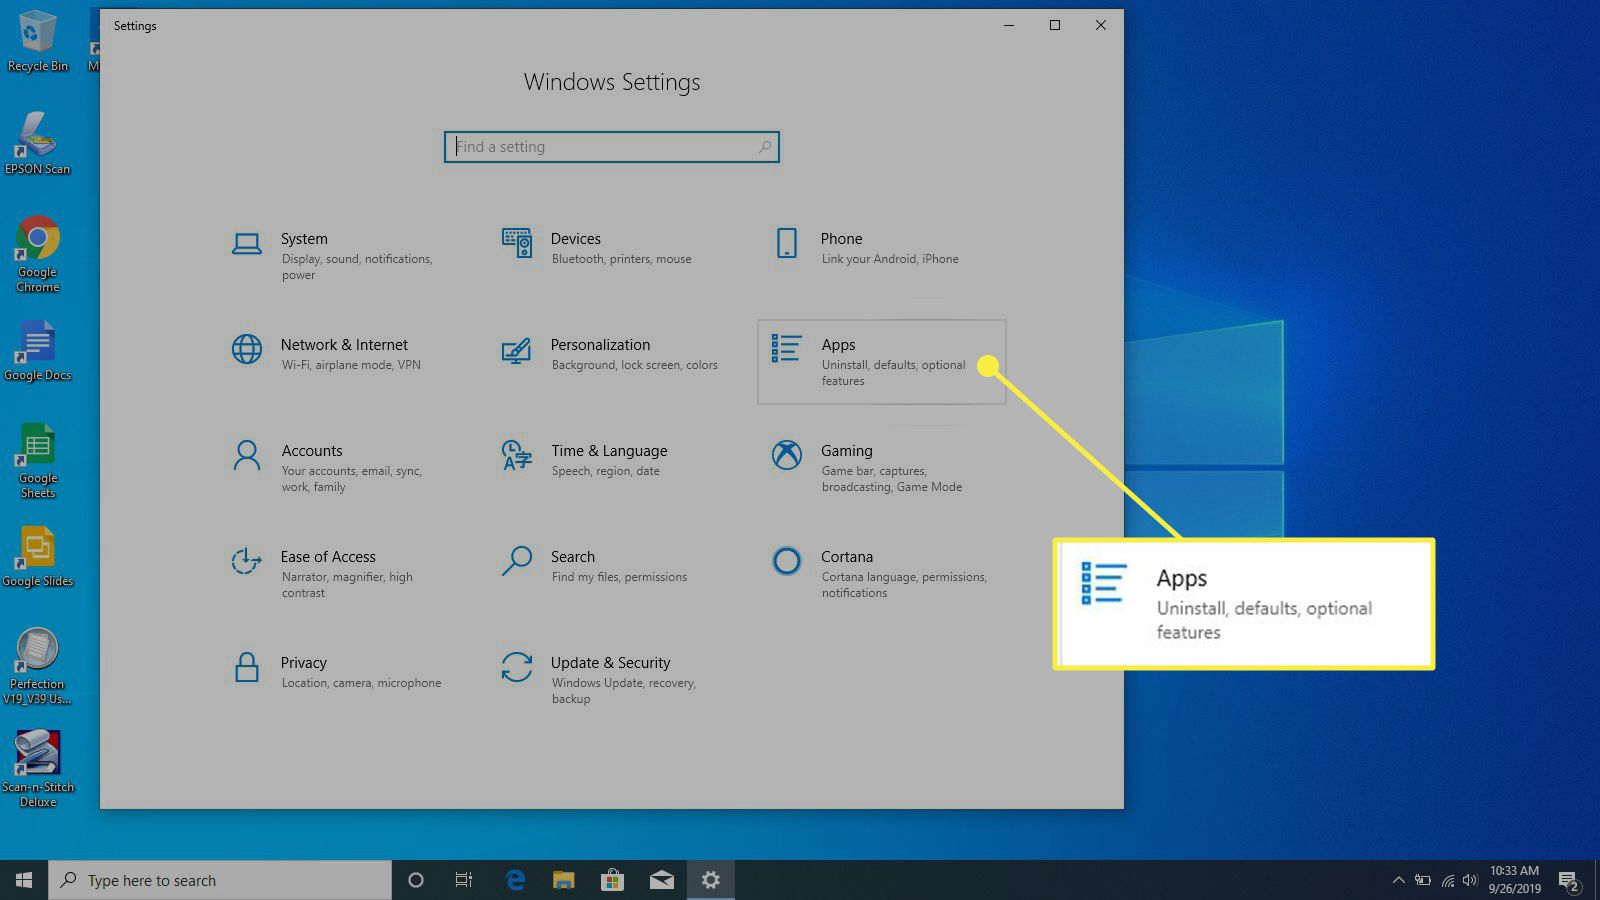 The Apps heading in Windows Settings